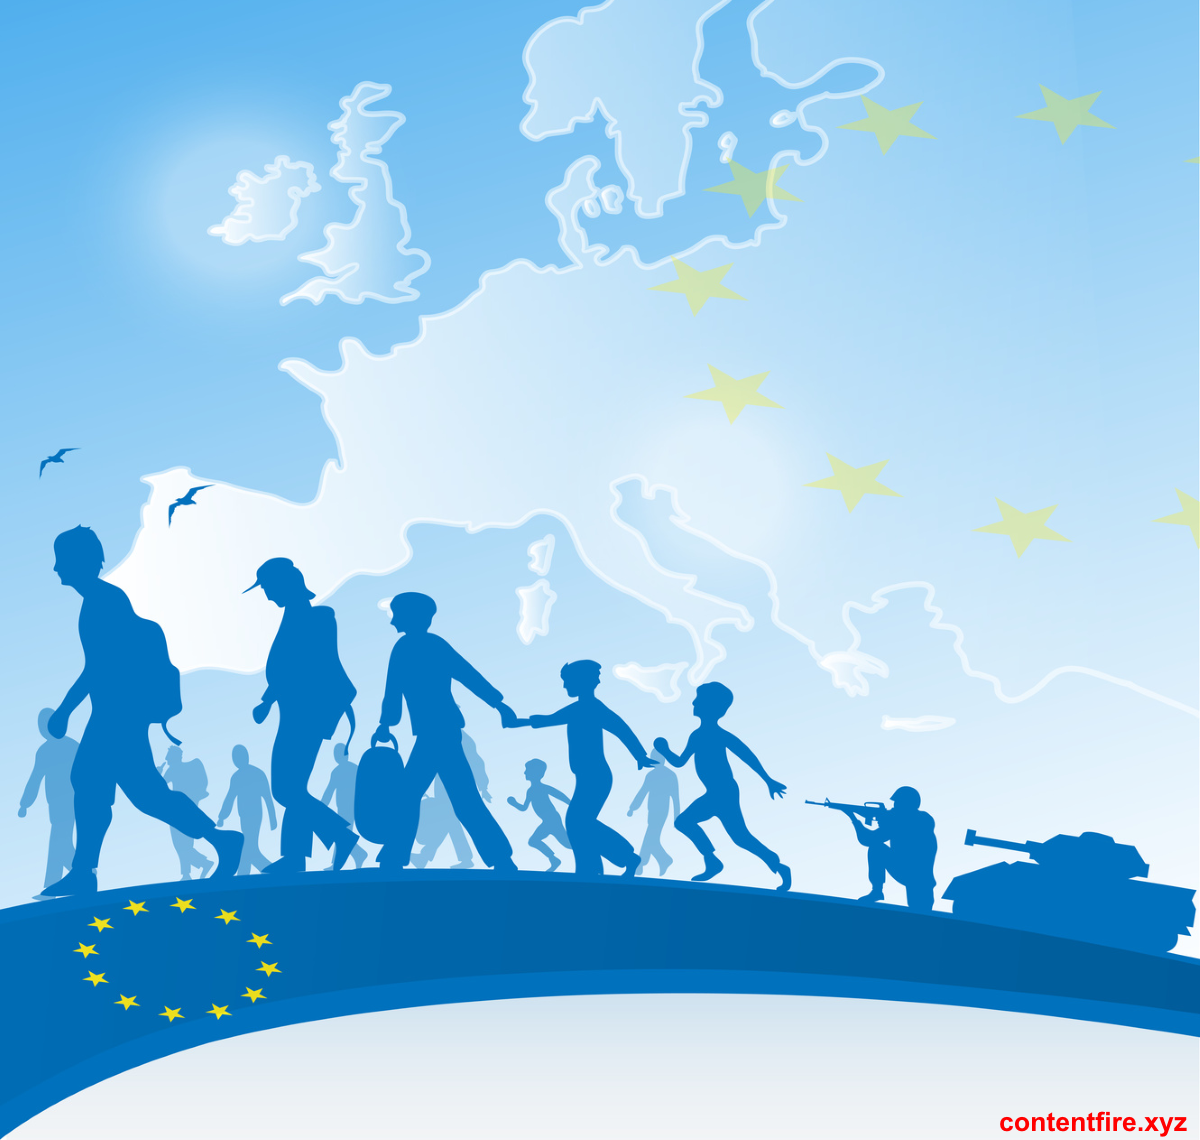 Recent migrations to Europe